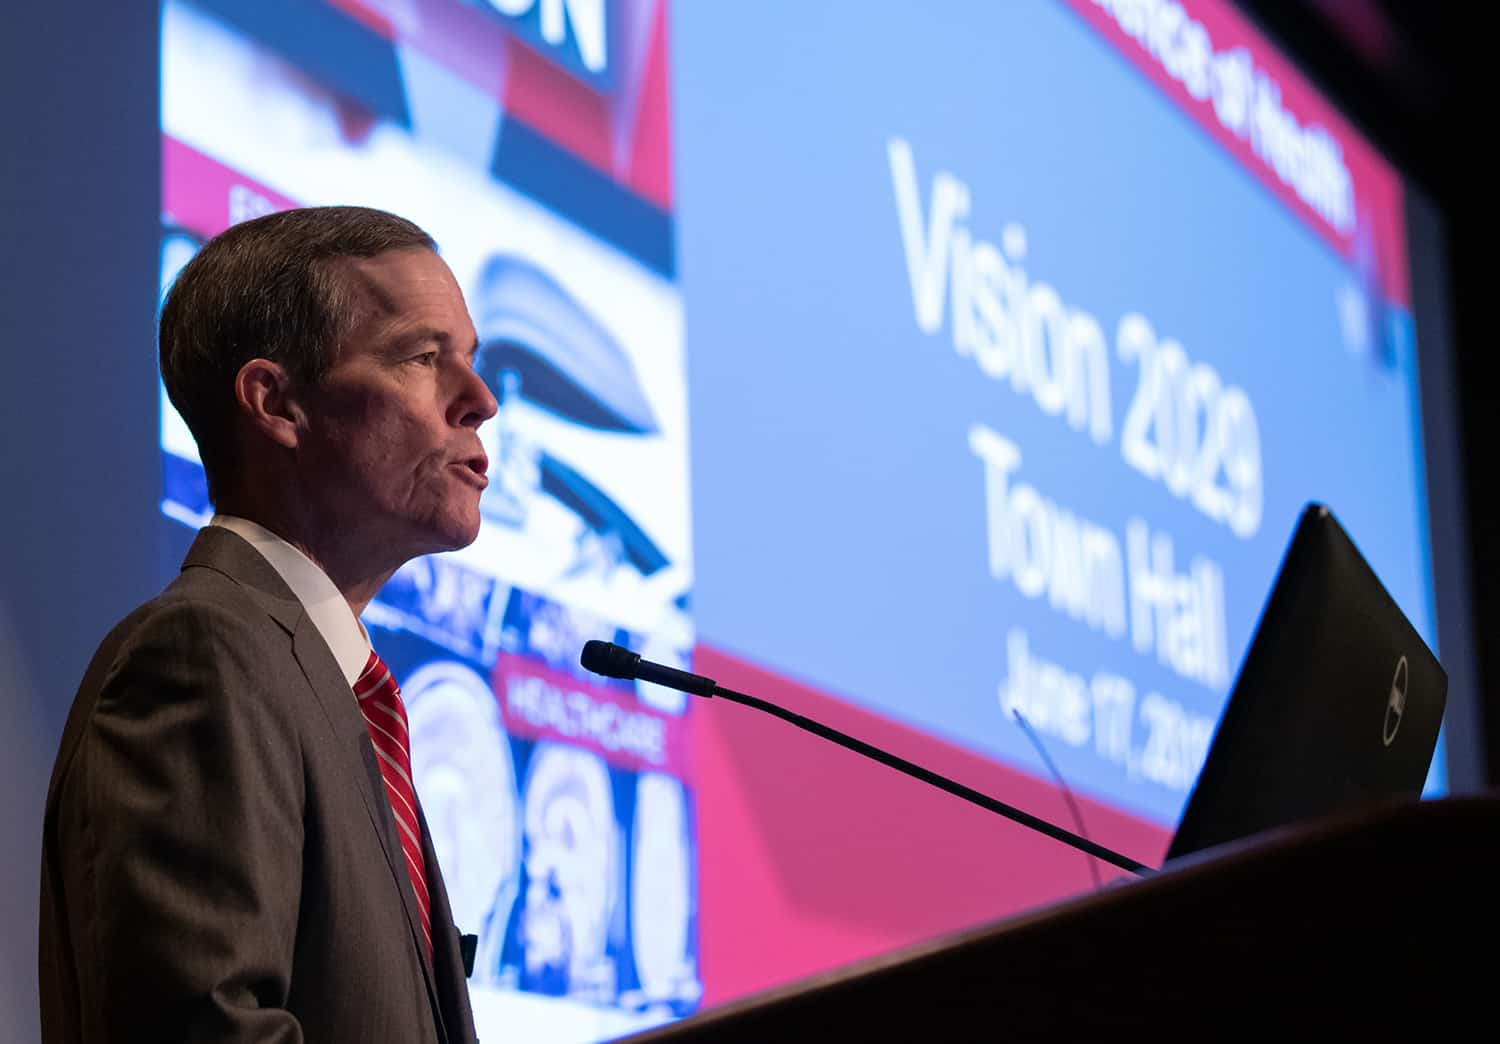 UAMS Chancellor Cam Patterson, M.D., MBA, speaks to a university town hall audience about the Vision 2029 strategic plan.